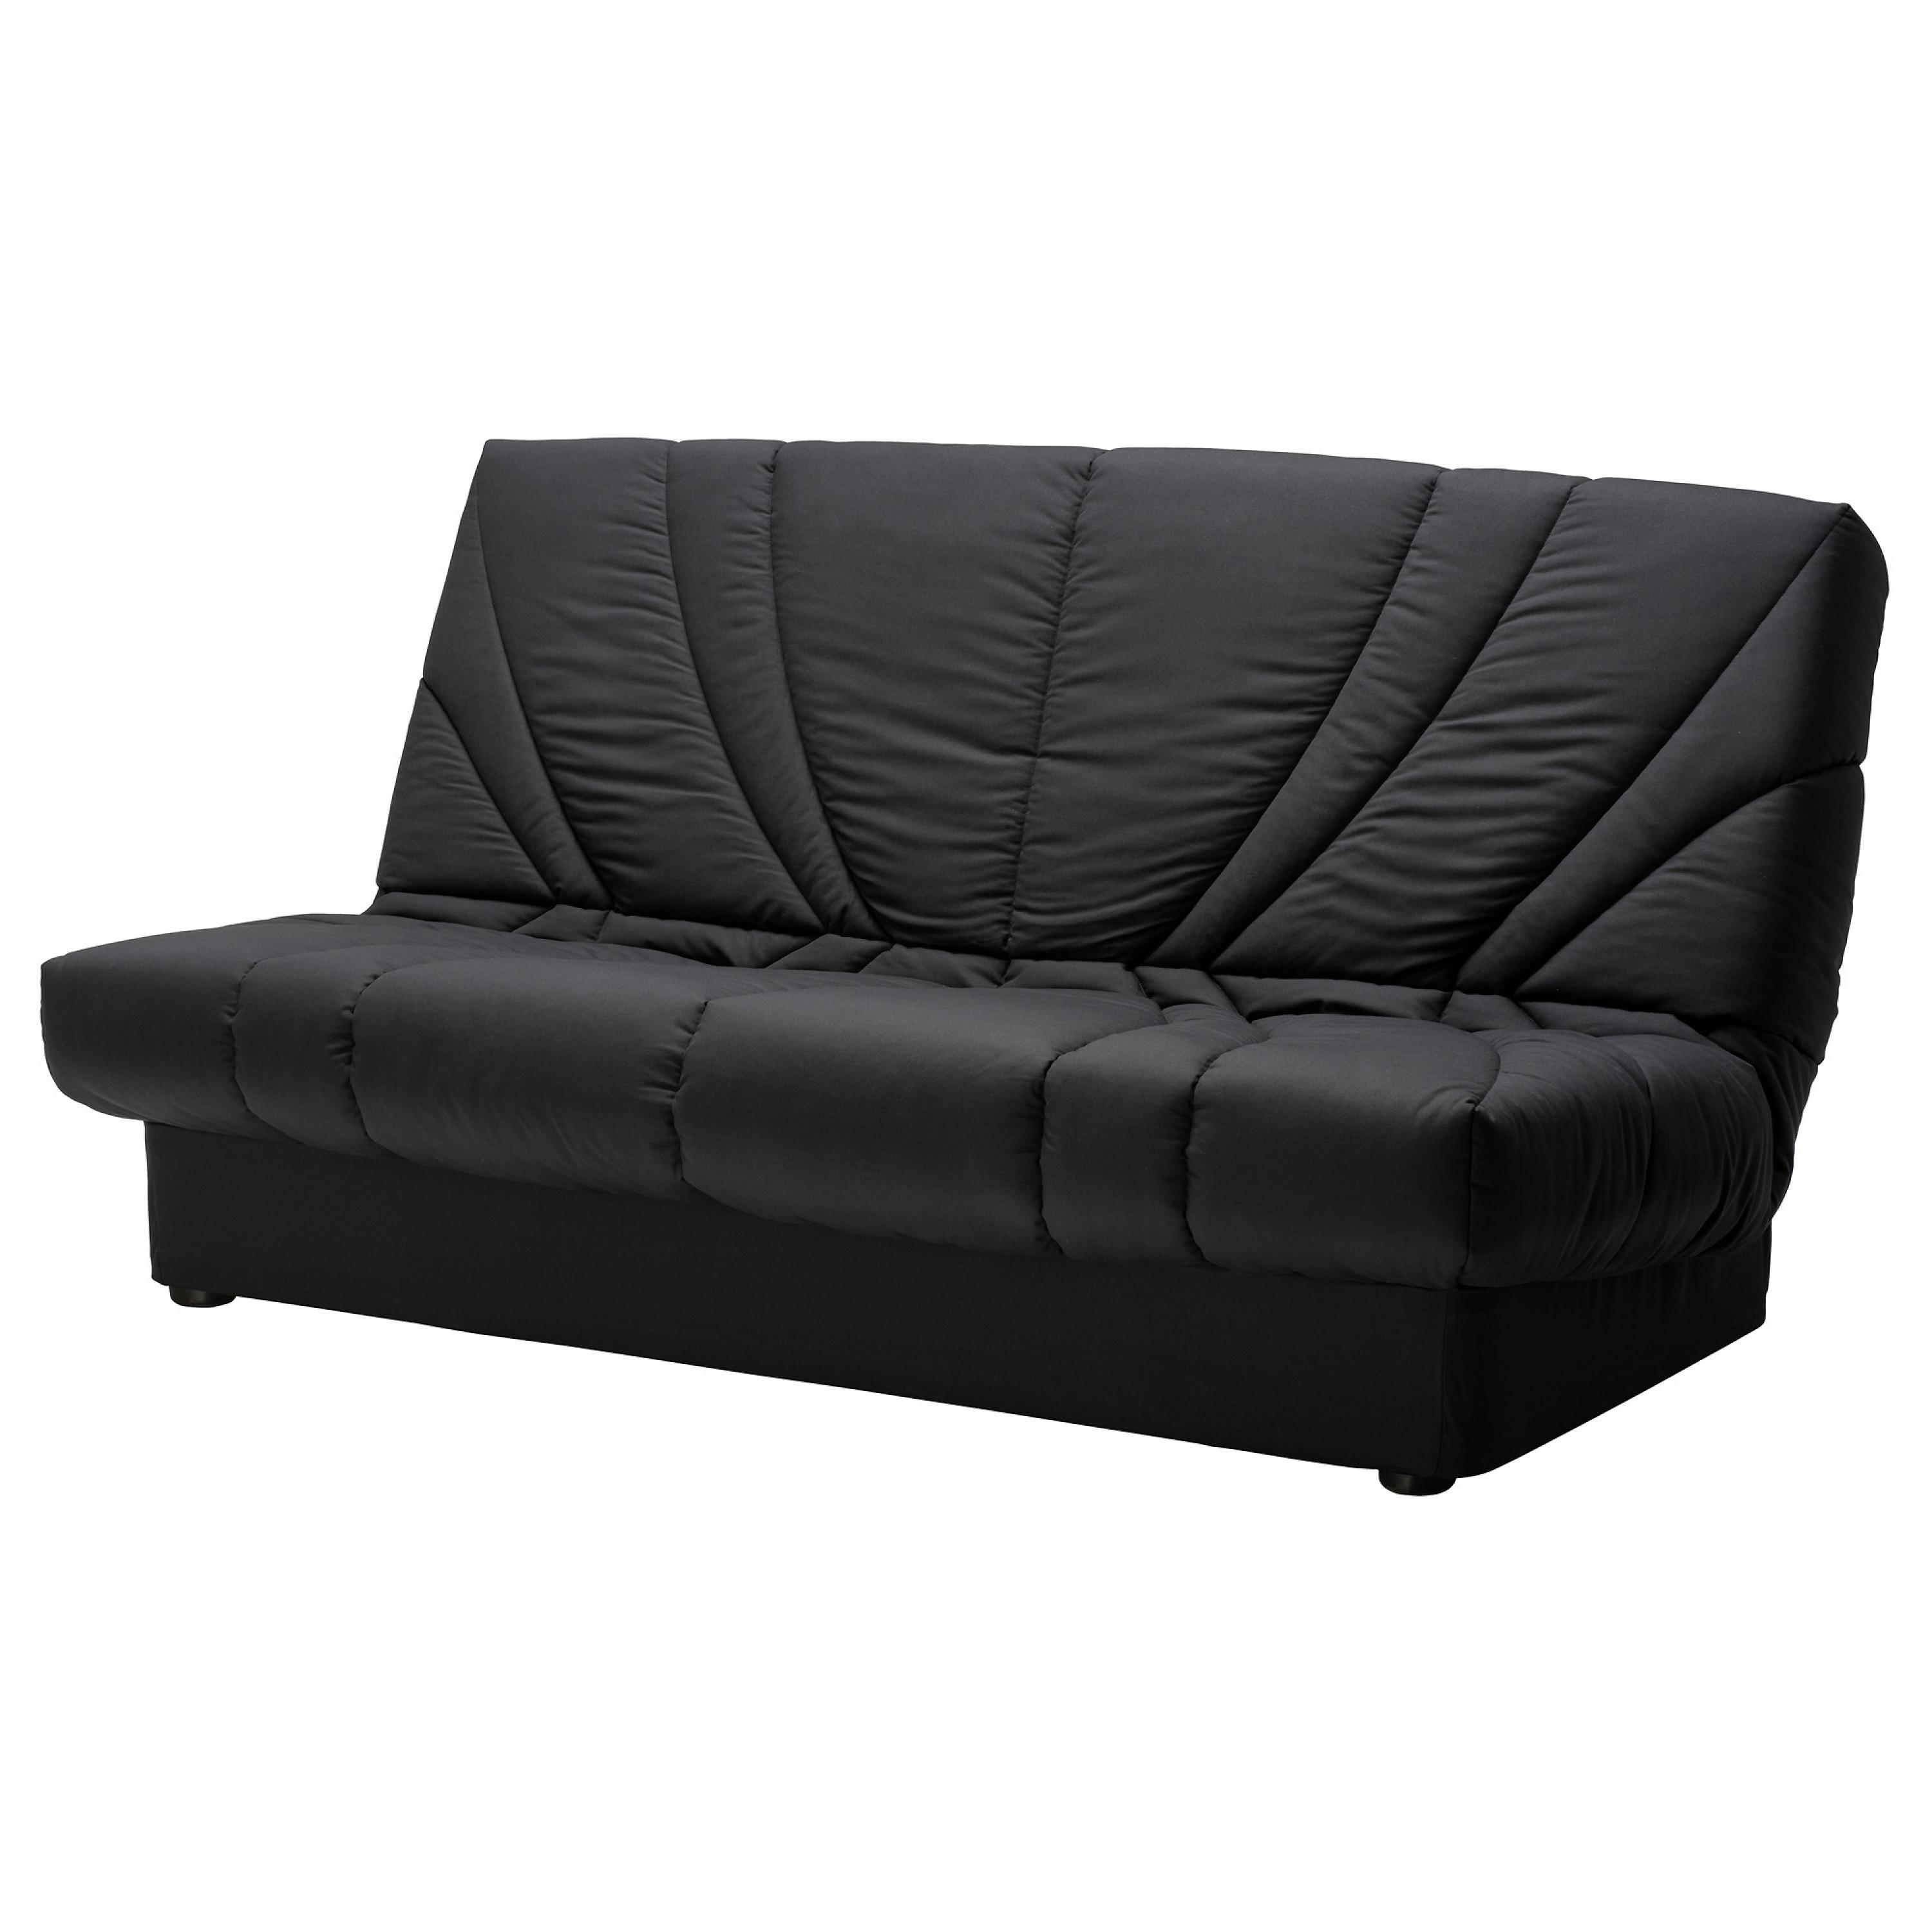 Photos canap convertible ikea 2 places - Ikea canape 2 places convertible ...